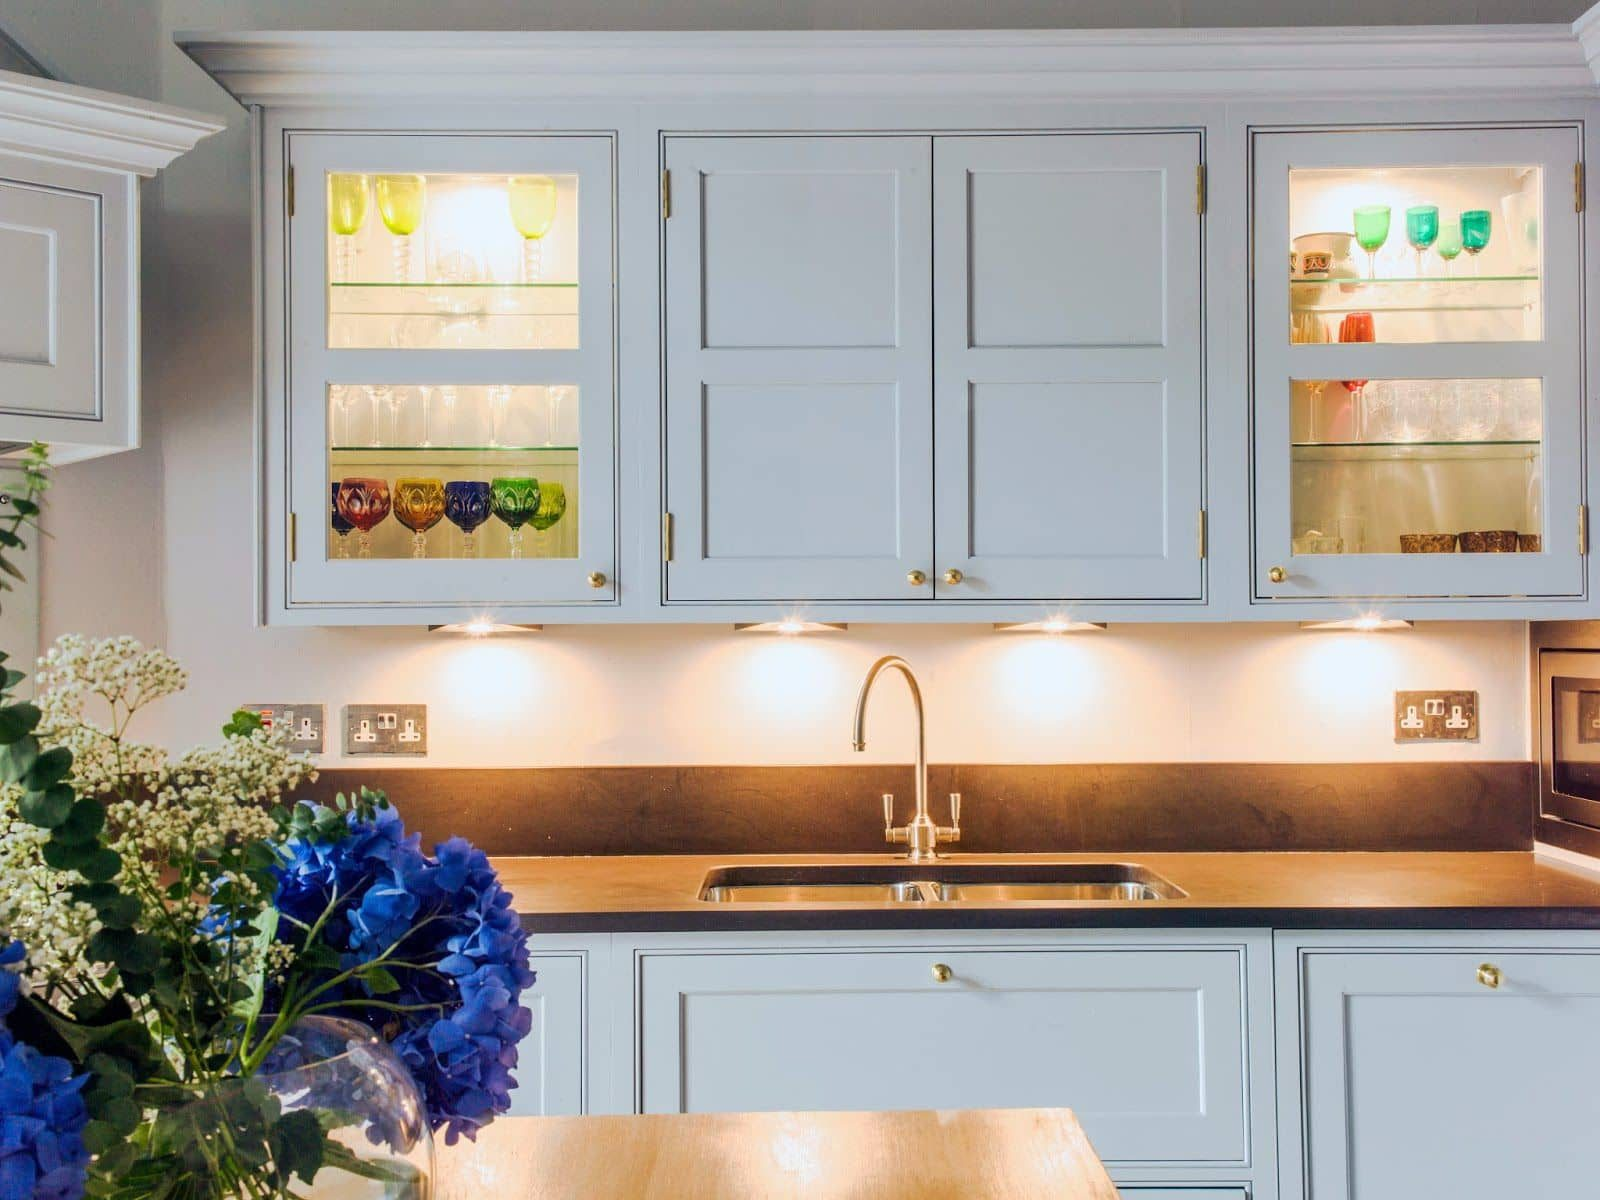 Traditional kitchen cupboards